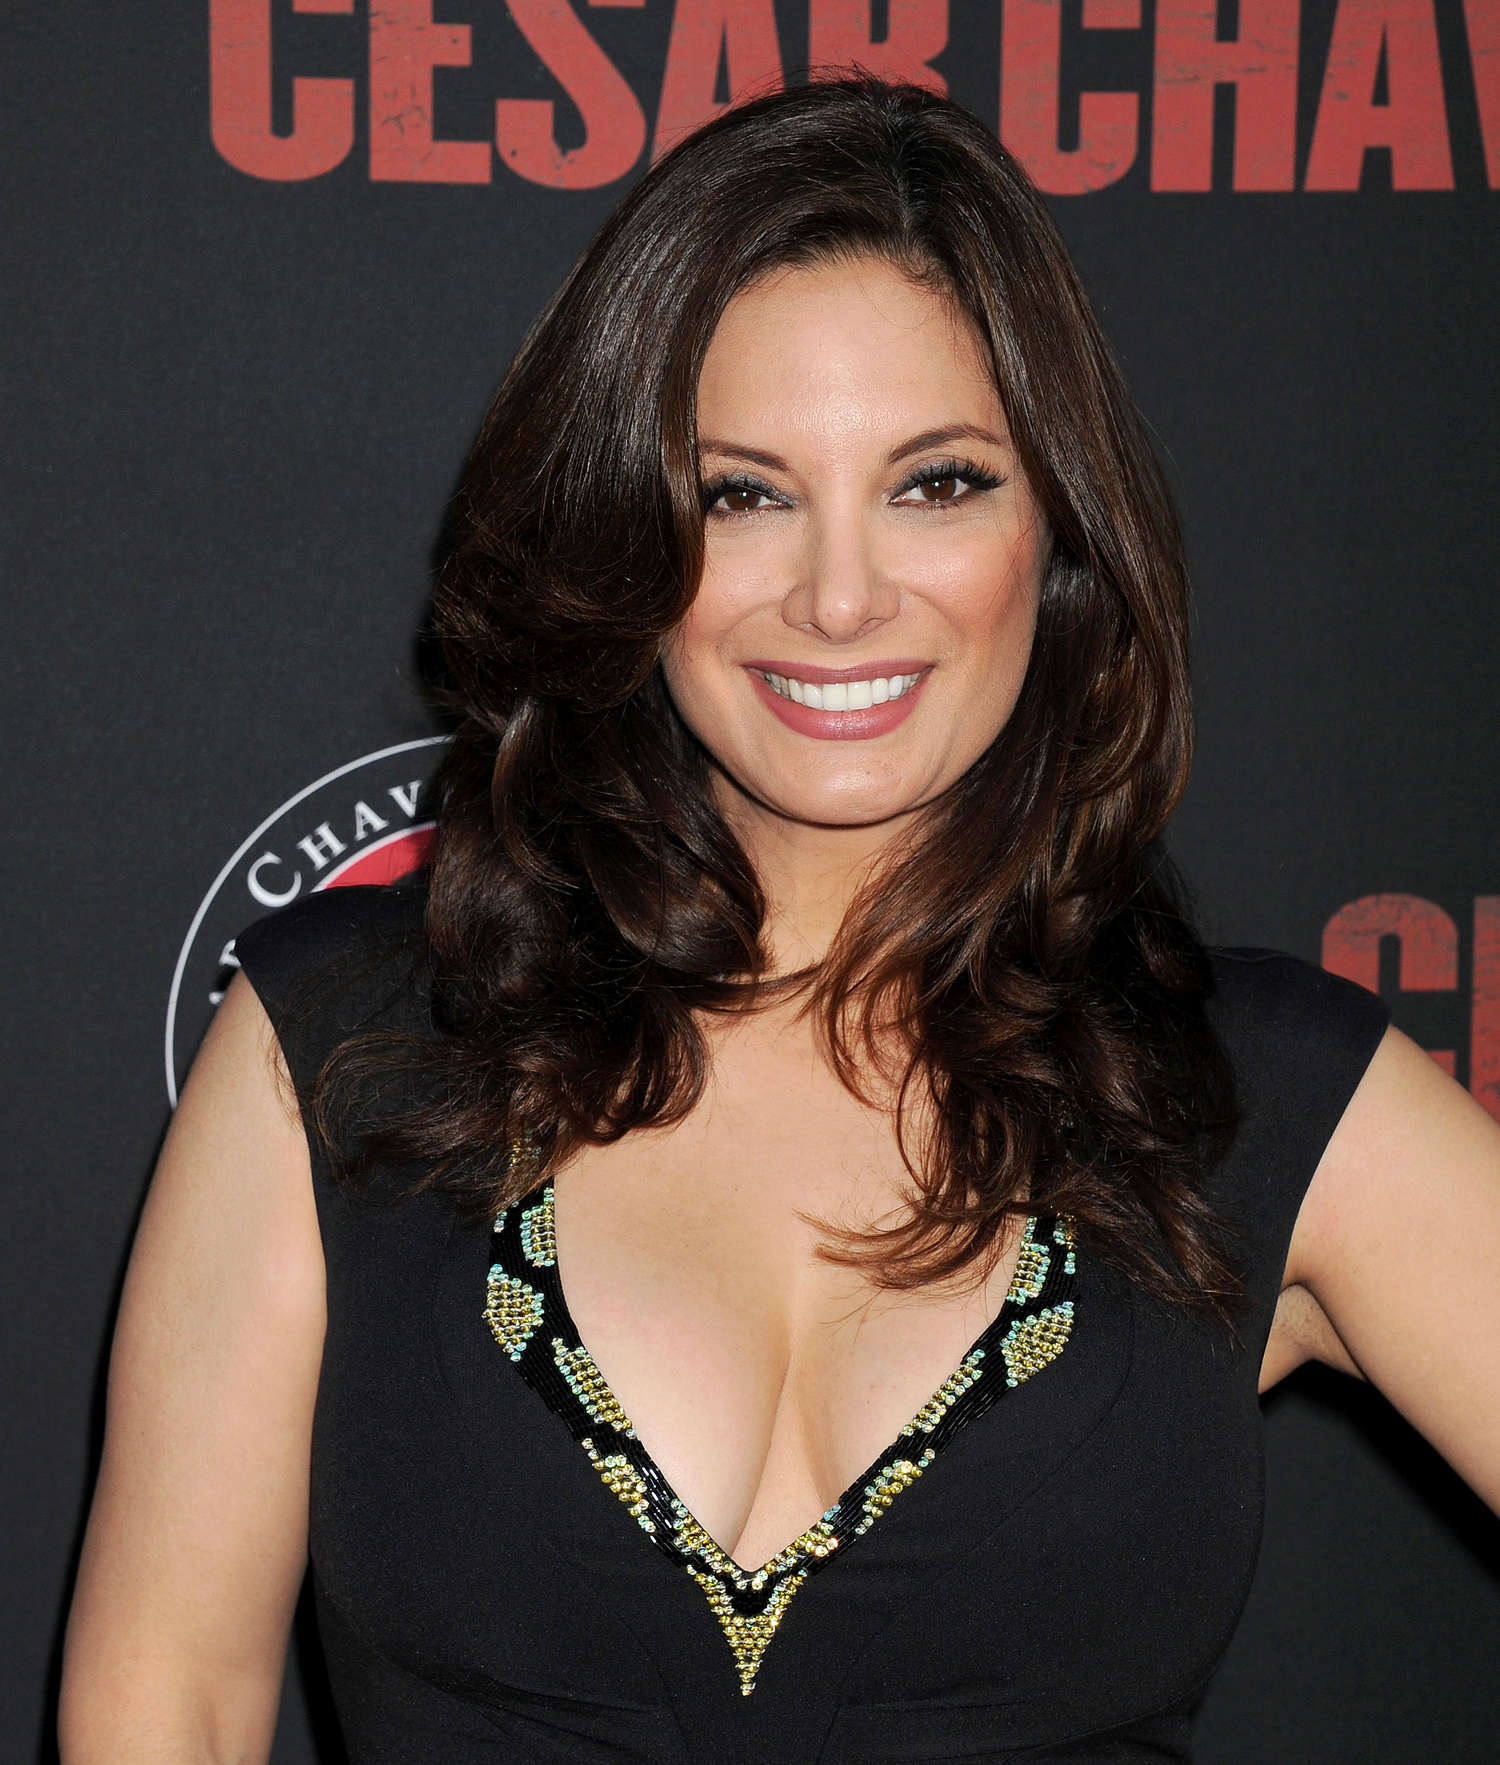 Alex Meneses Cesar Chavez Premiere in Hollywood